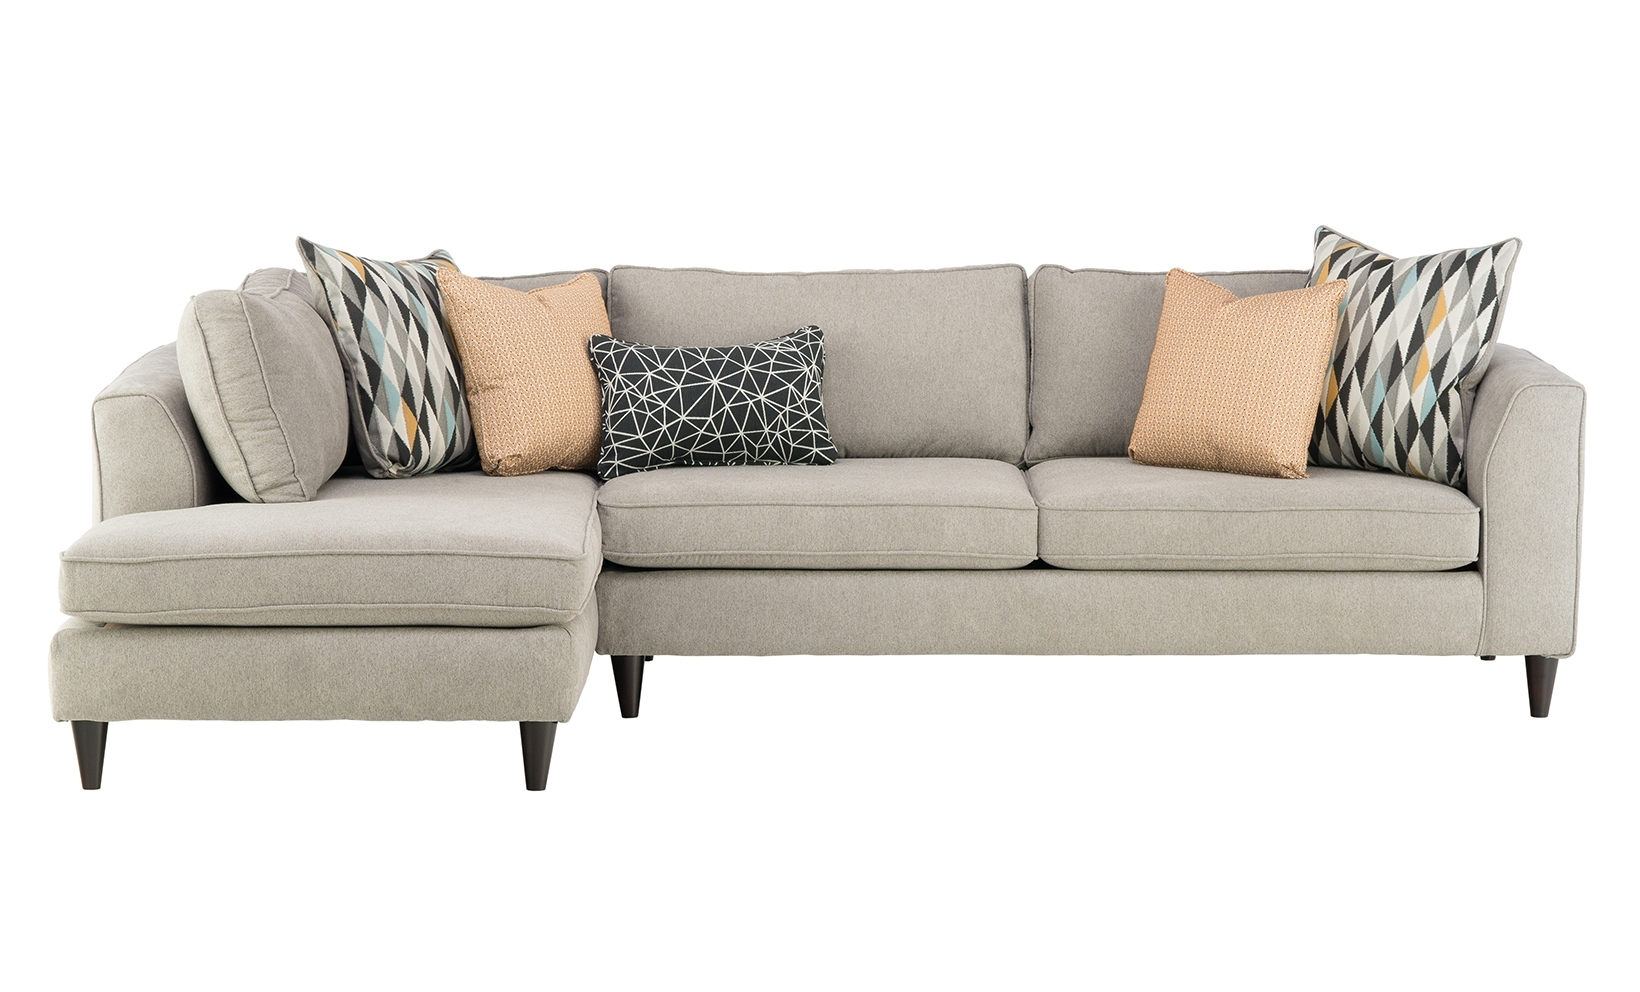 10 Best Minneapolis Sectional Sofas | Sofa Ideas